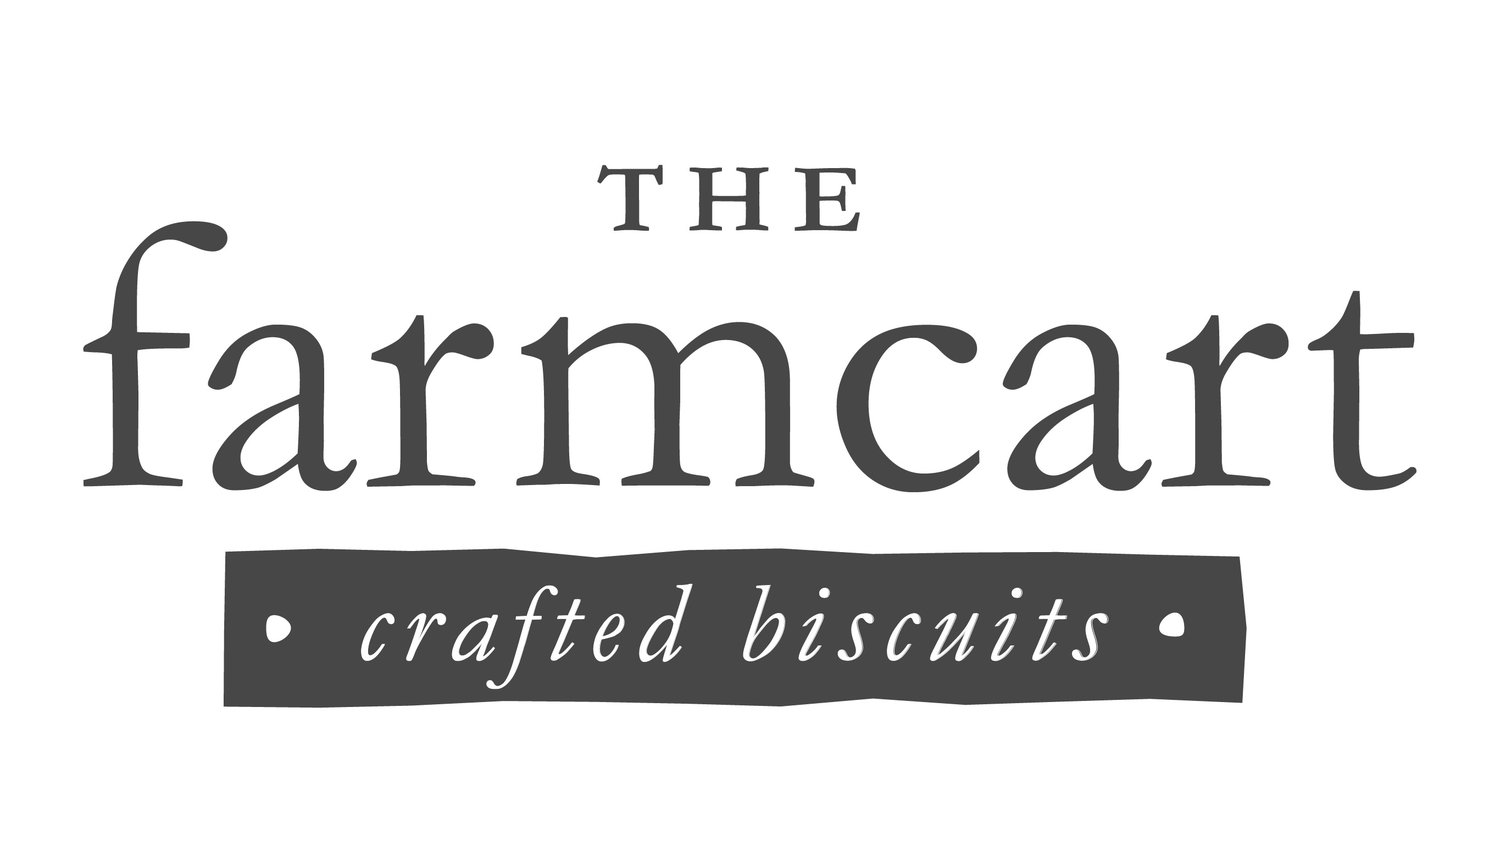 The Farmcart restaurant located in ATHENS, GA